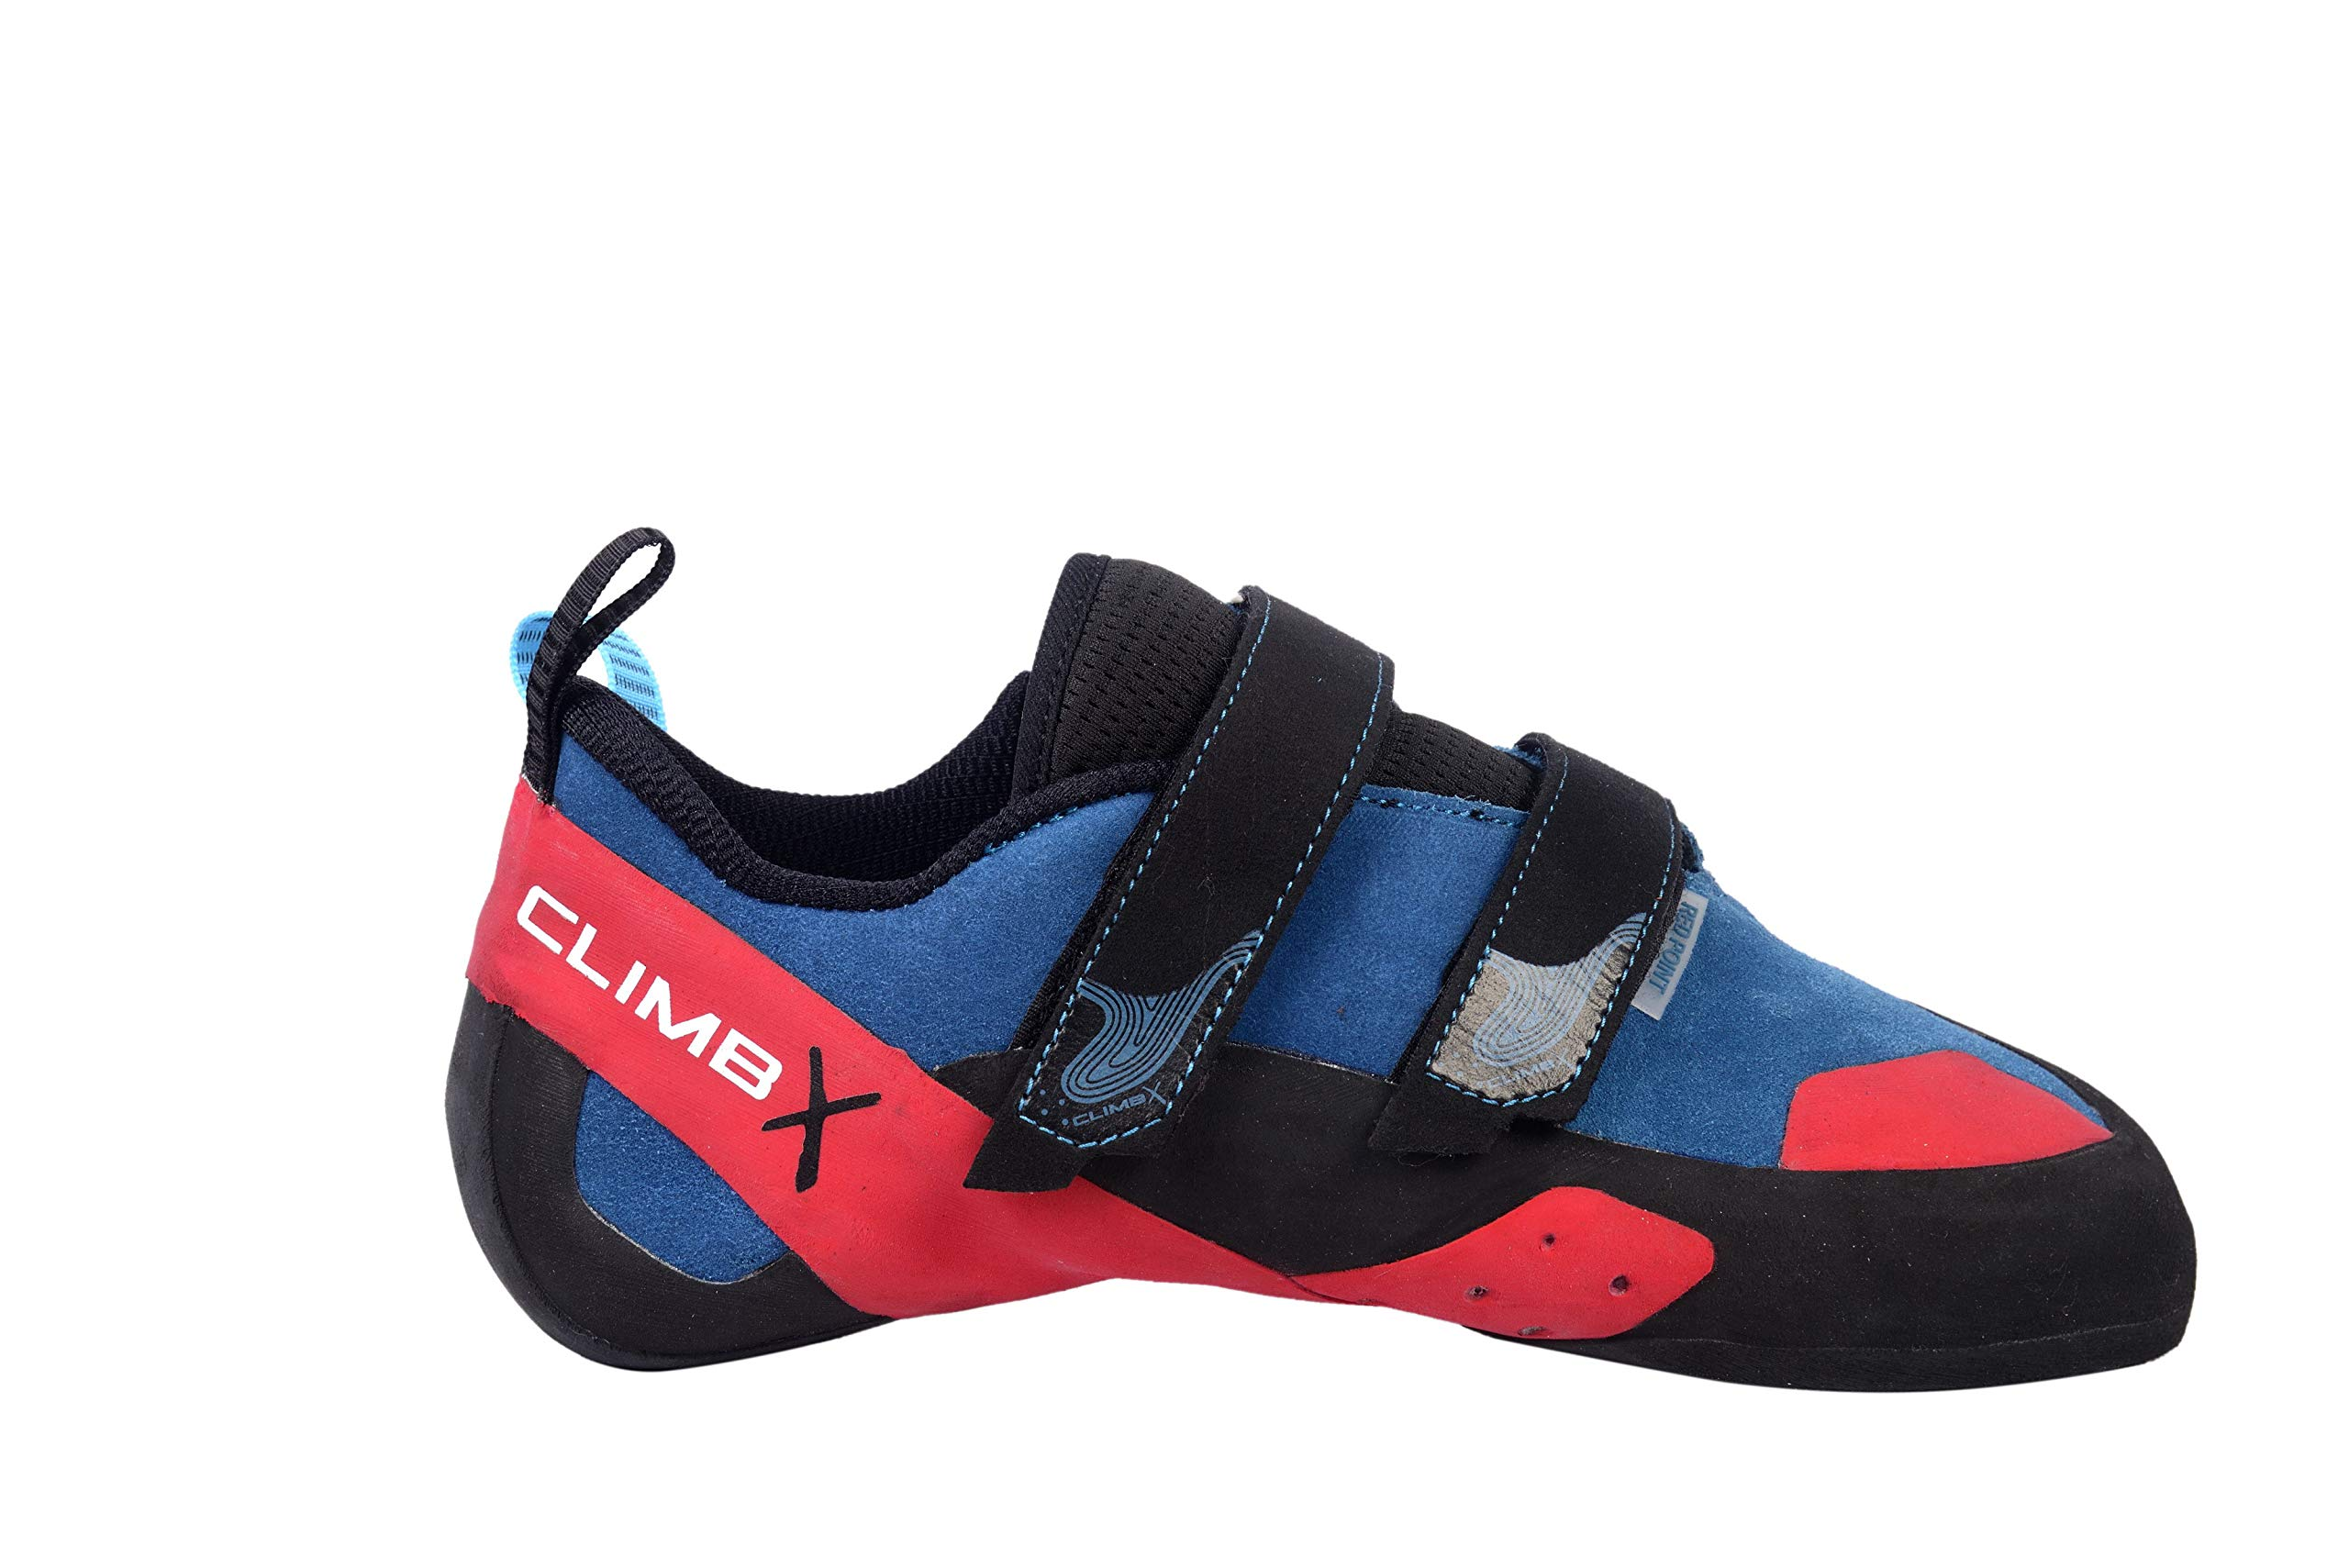 Climb X Gear Red Point Climbing Shoe 2019 (8)